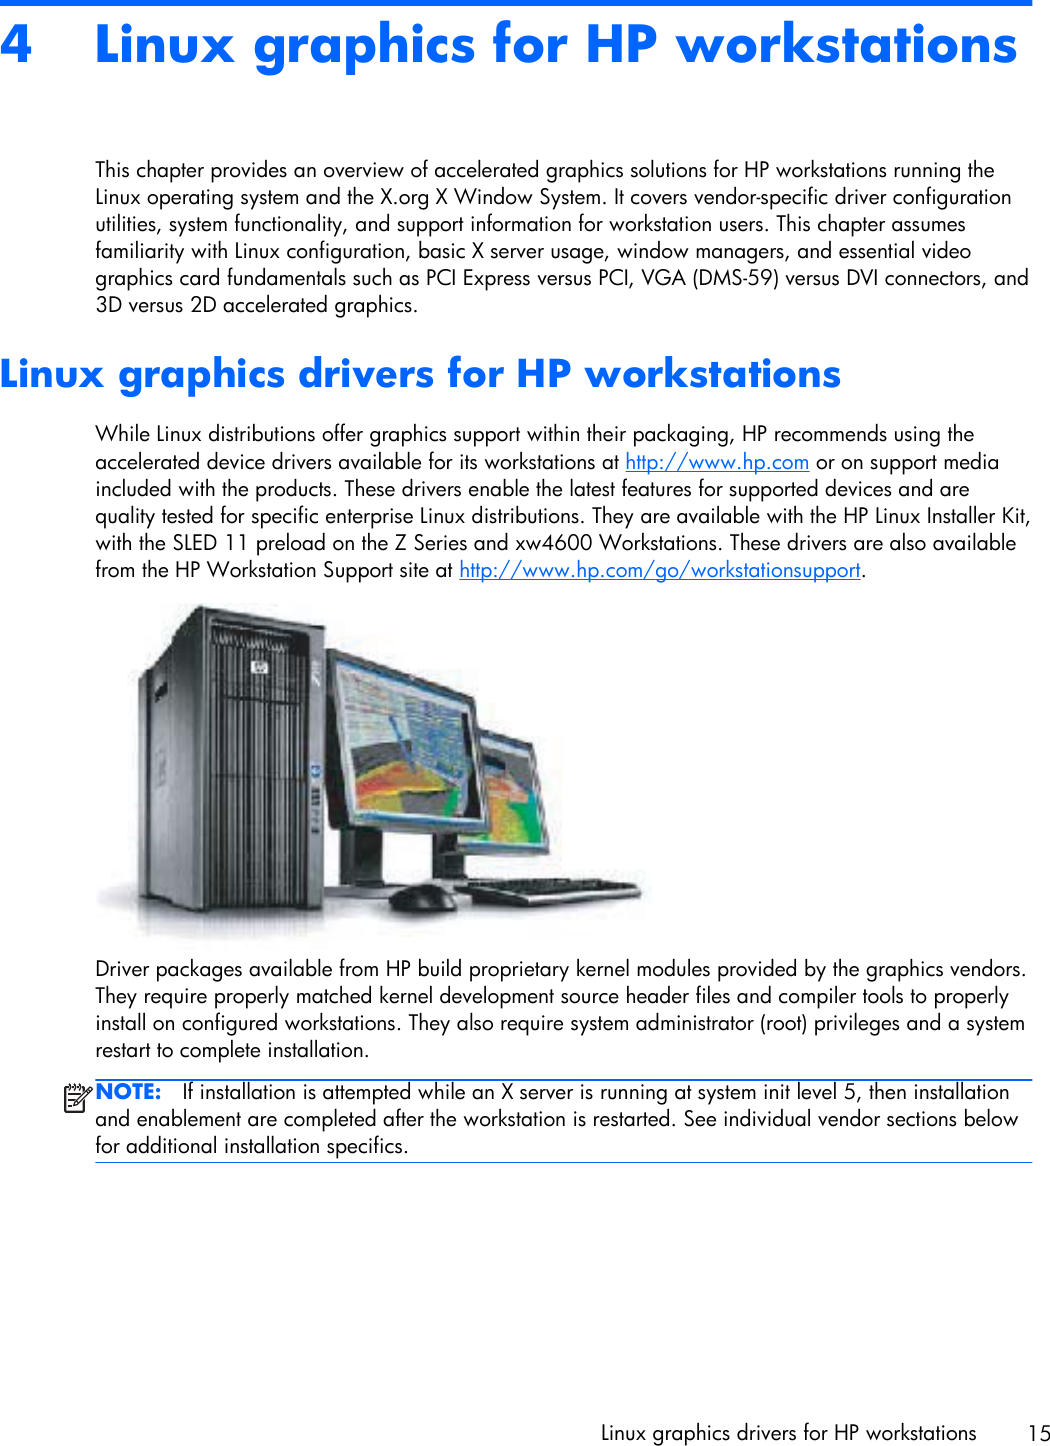 HP Workstations For Linux User Guide C00063015